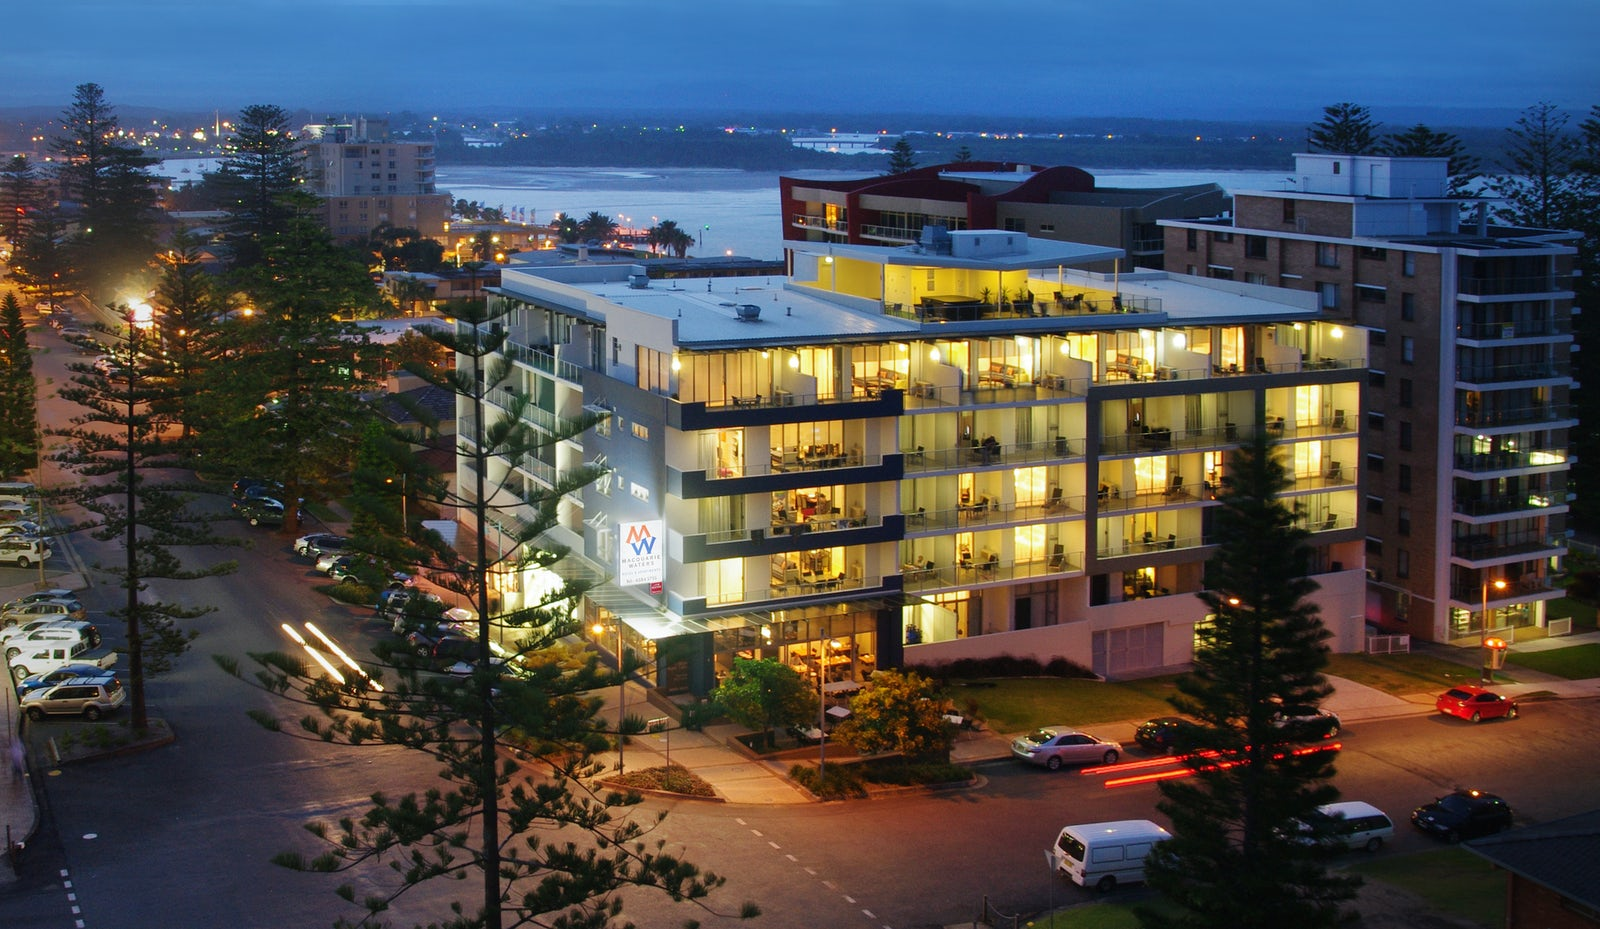 Macquarie Waters boutique hotel at night in Port Macquarie